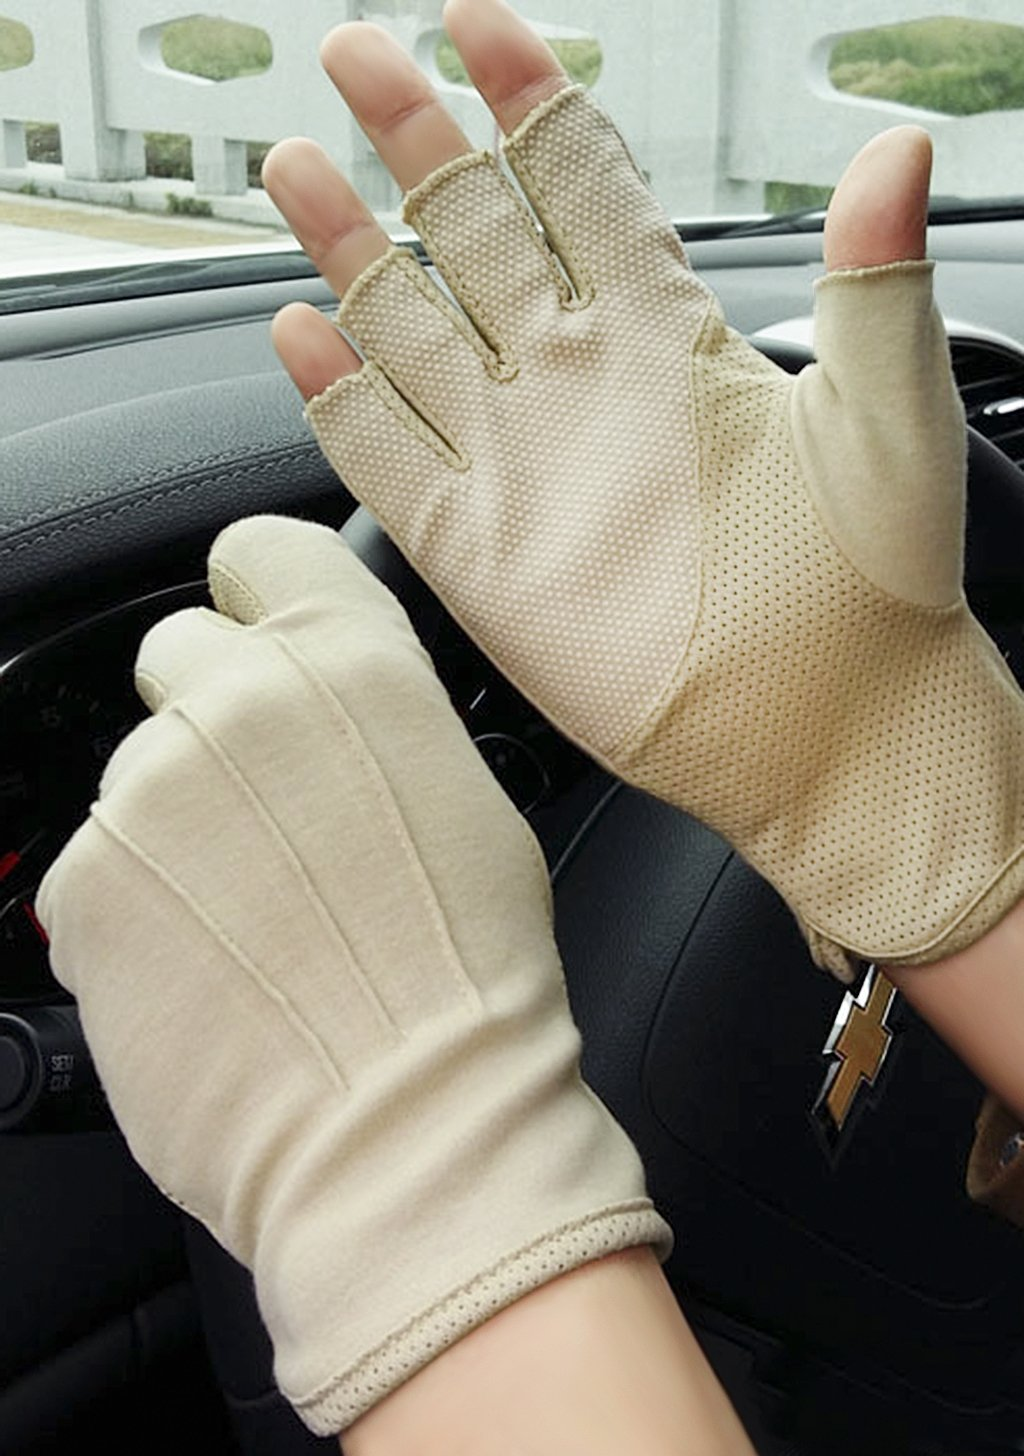 JIAHG Men Summer Driving Gloves Women Sunscreen Half Finger Fingerless Gloves Lightweight Summer UV Protection Cycling Gloves Breathable GYM Fitness Workout Motorcycling Cotton Gloves